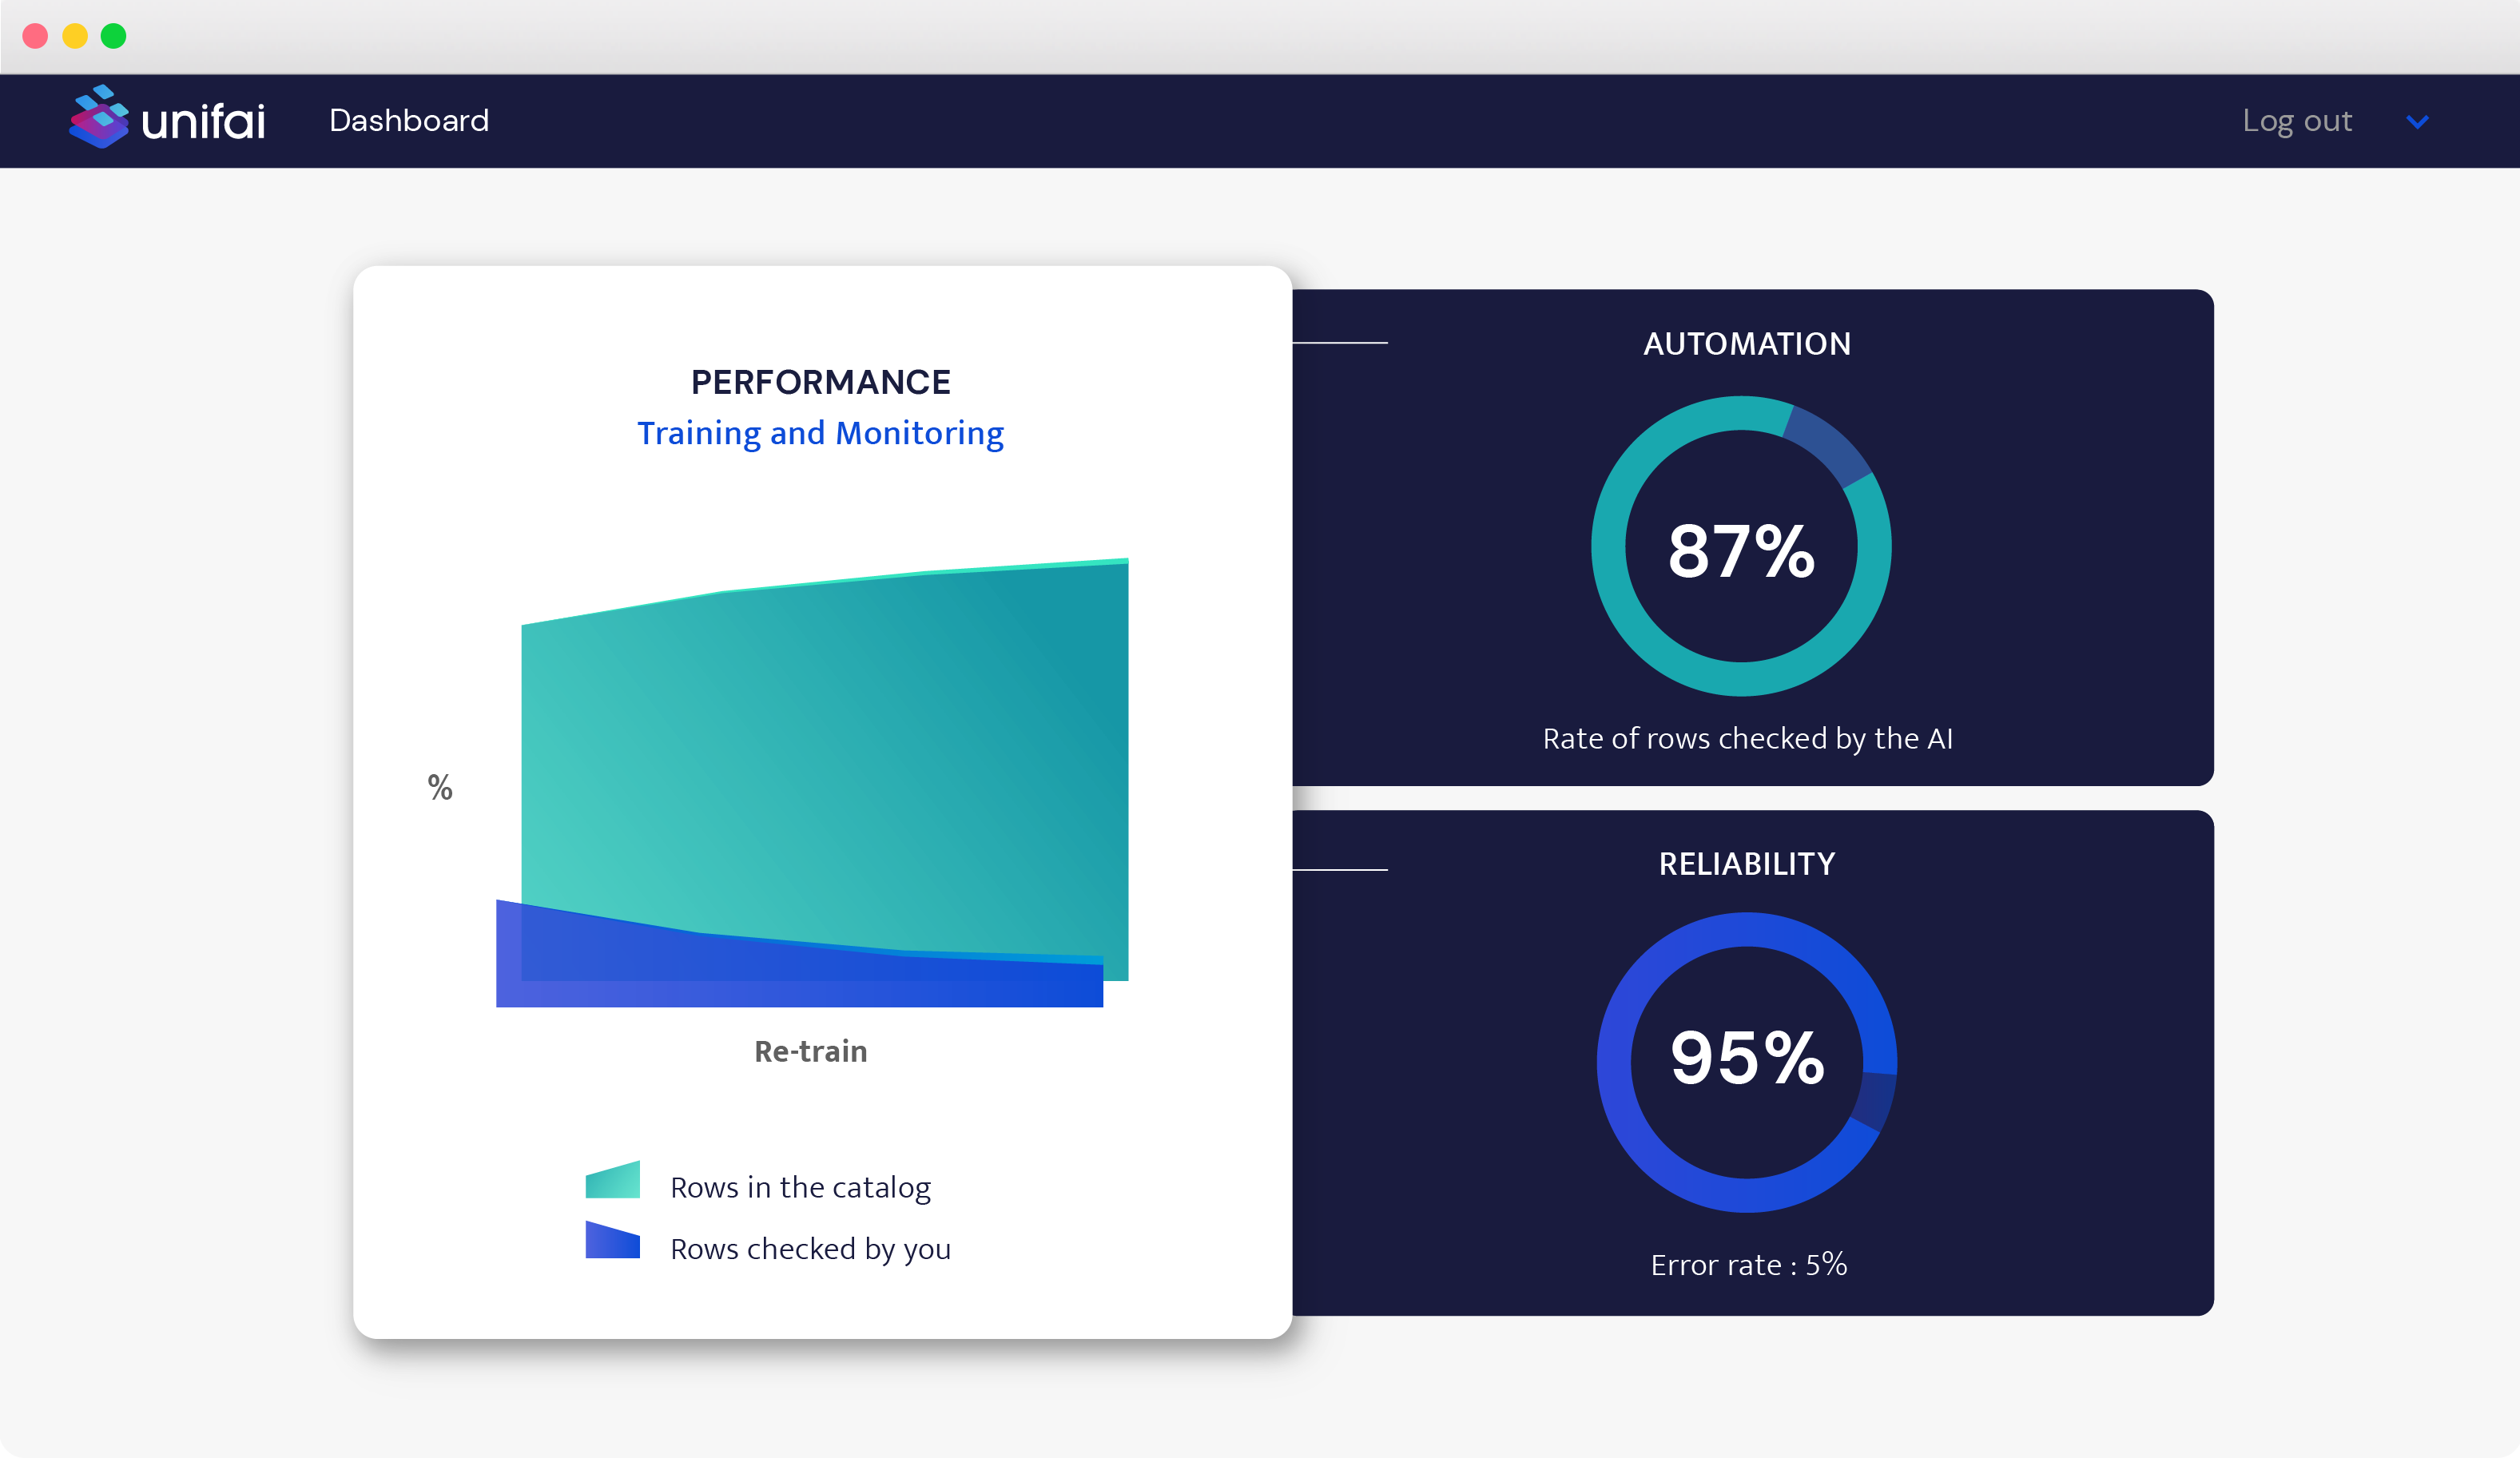 Unifai performance dashboard